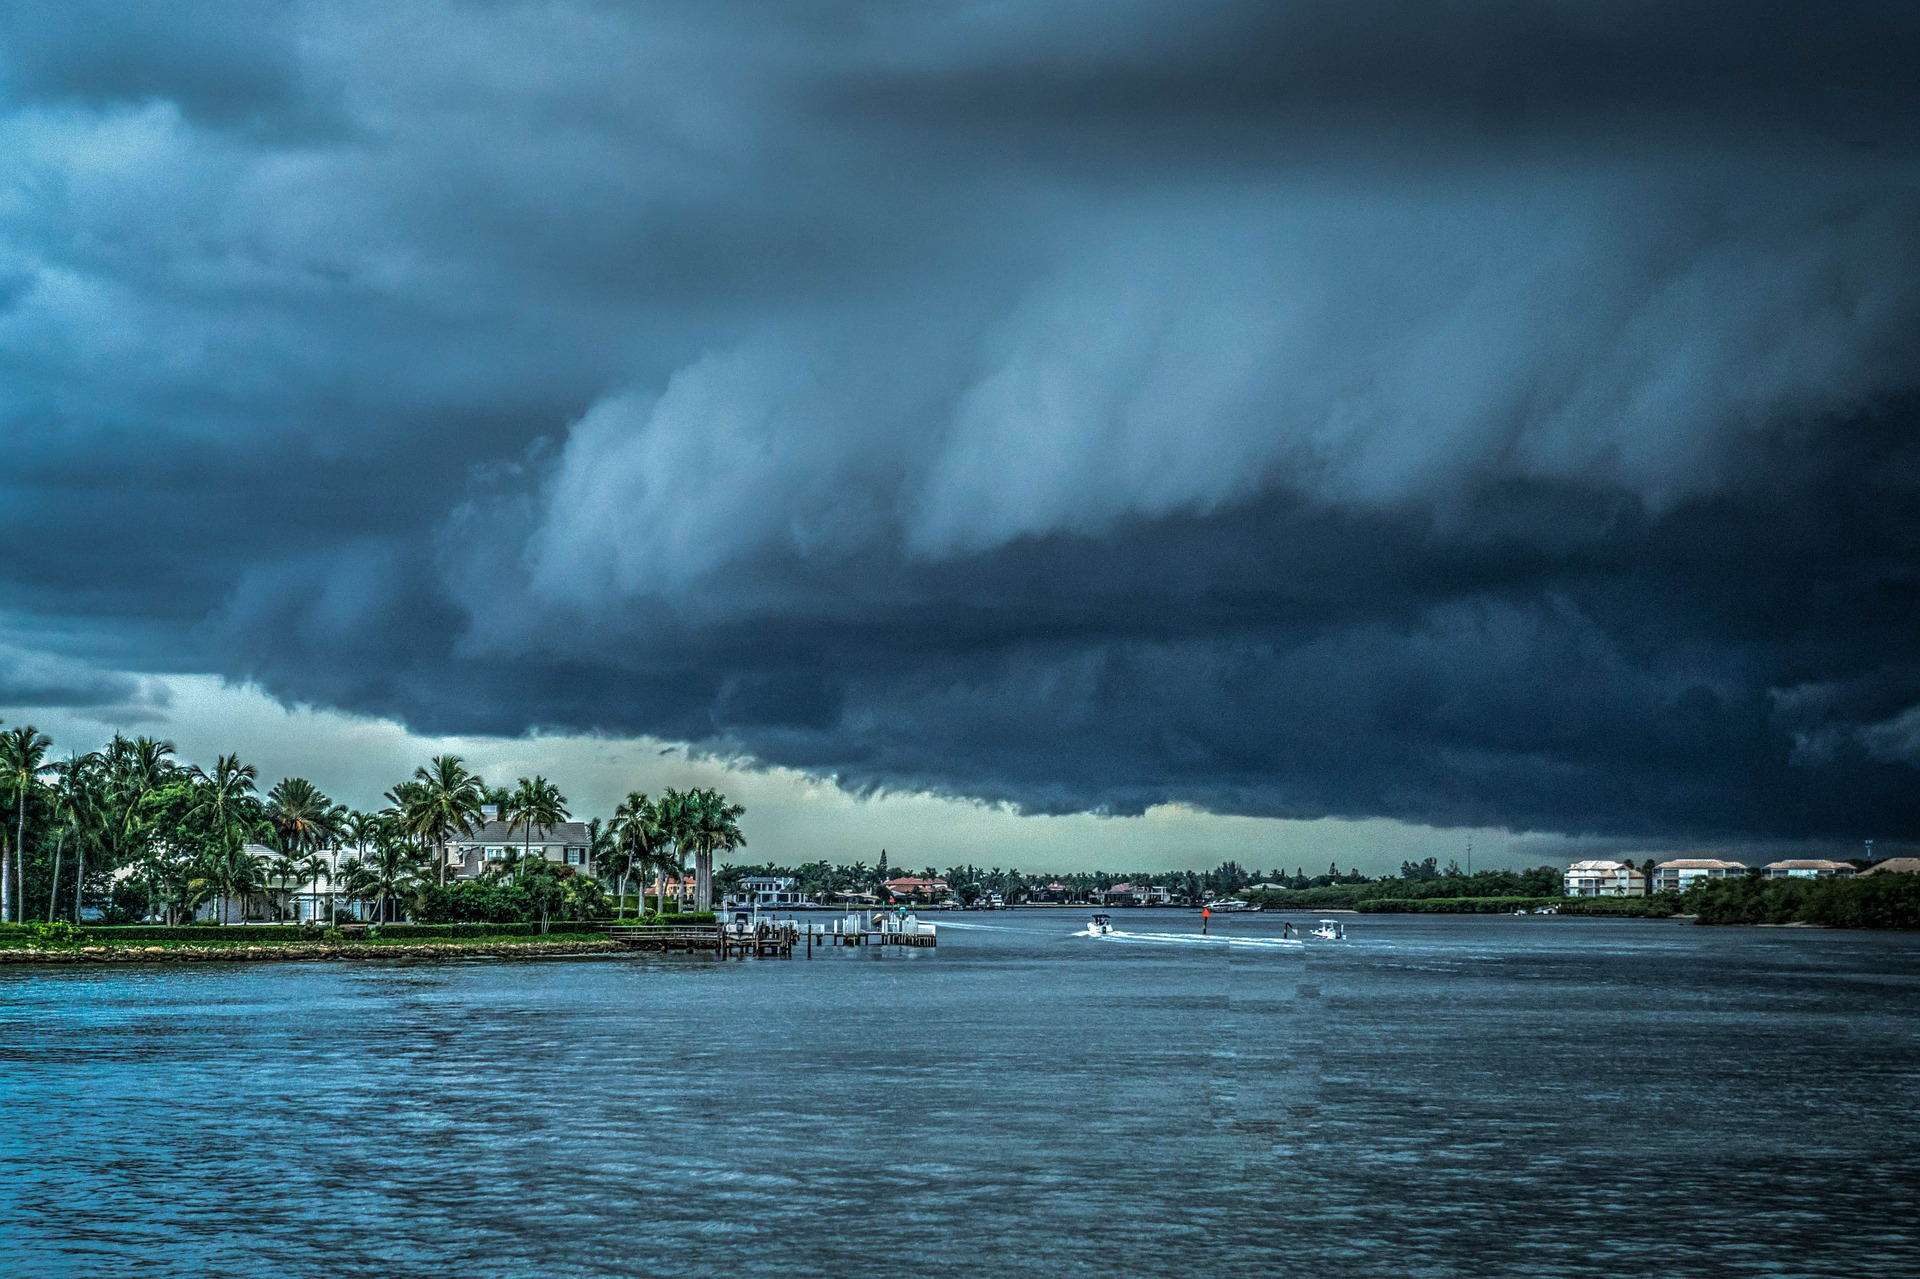 ... Down the Hatches: 3 Boat Preparation Tips for Hurricane Season 2016